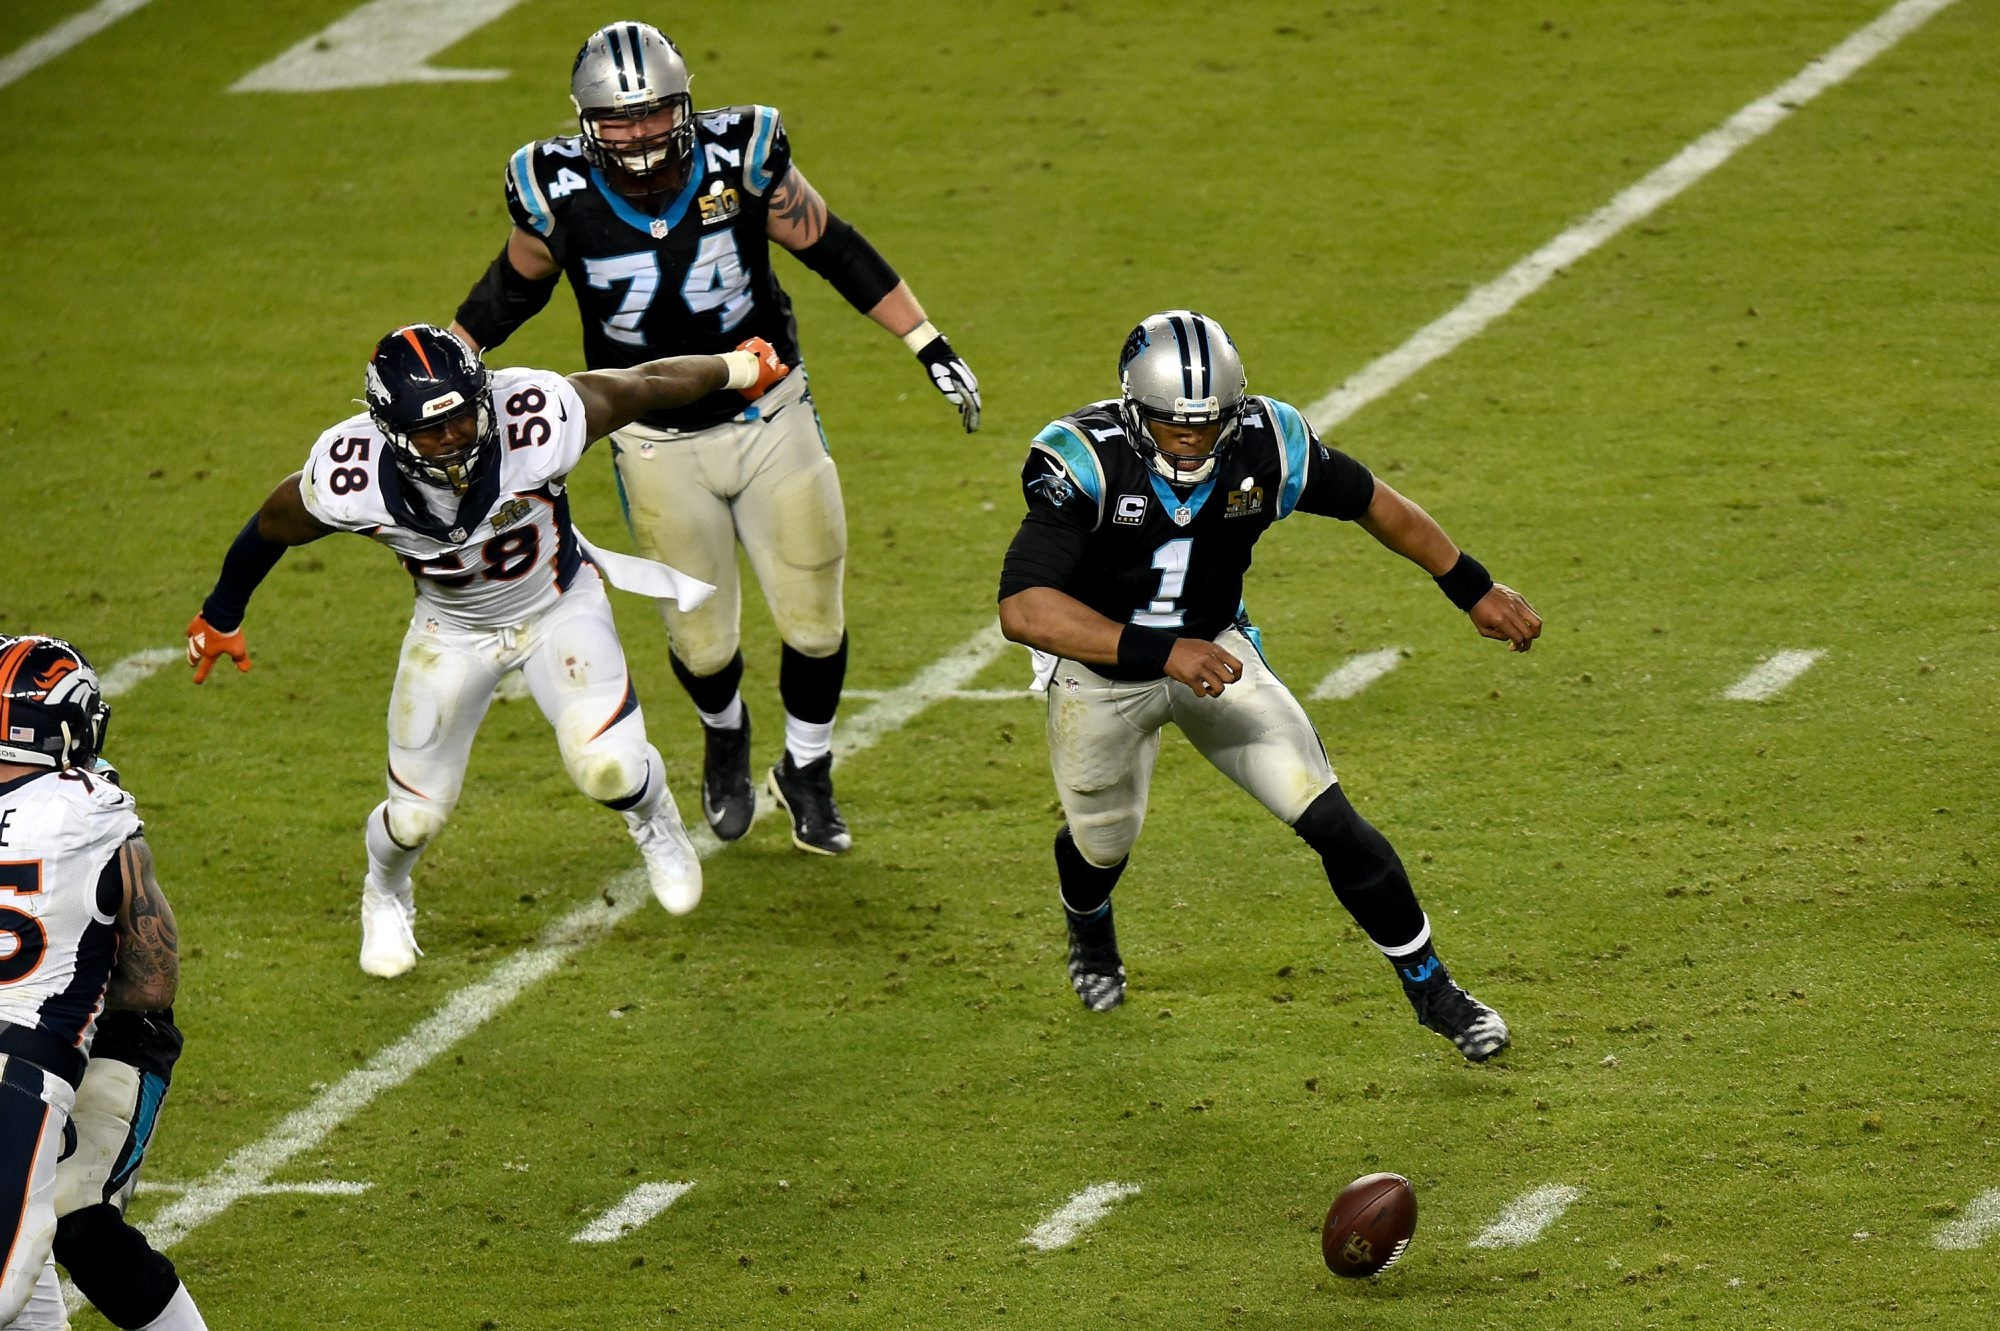 Cam Newton of the Carolina Panthers chases his fumble caused by Denver's Von Miller in what has become a controversial play in Super Bowl 50.